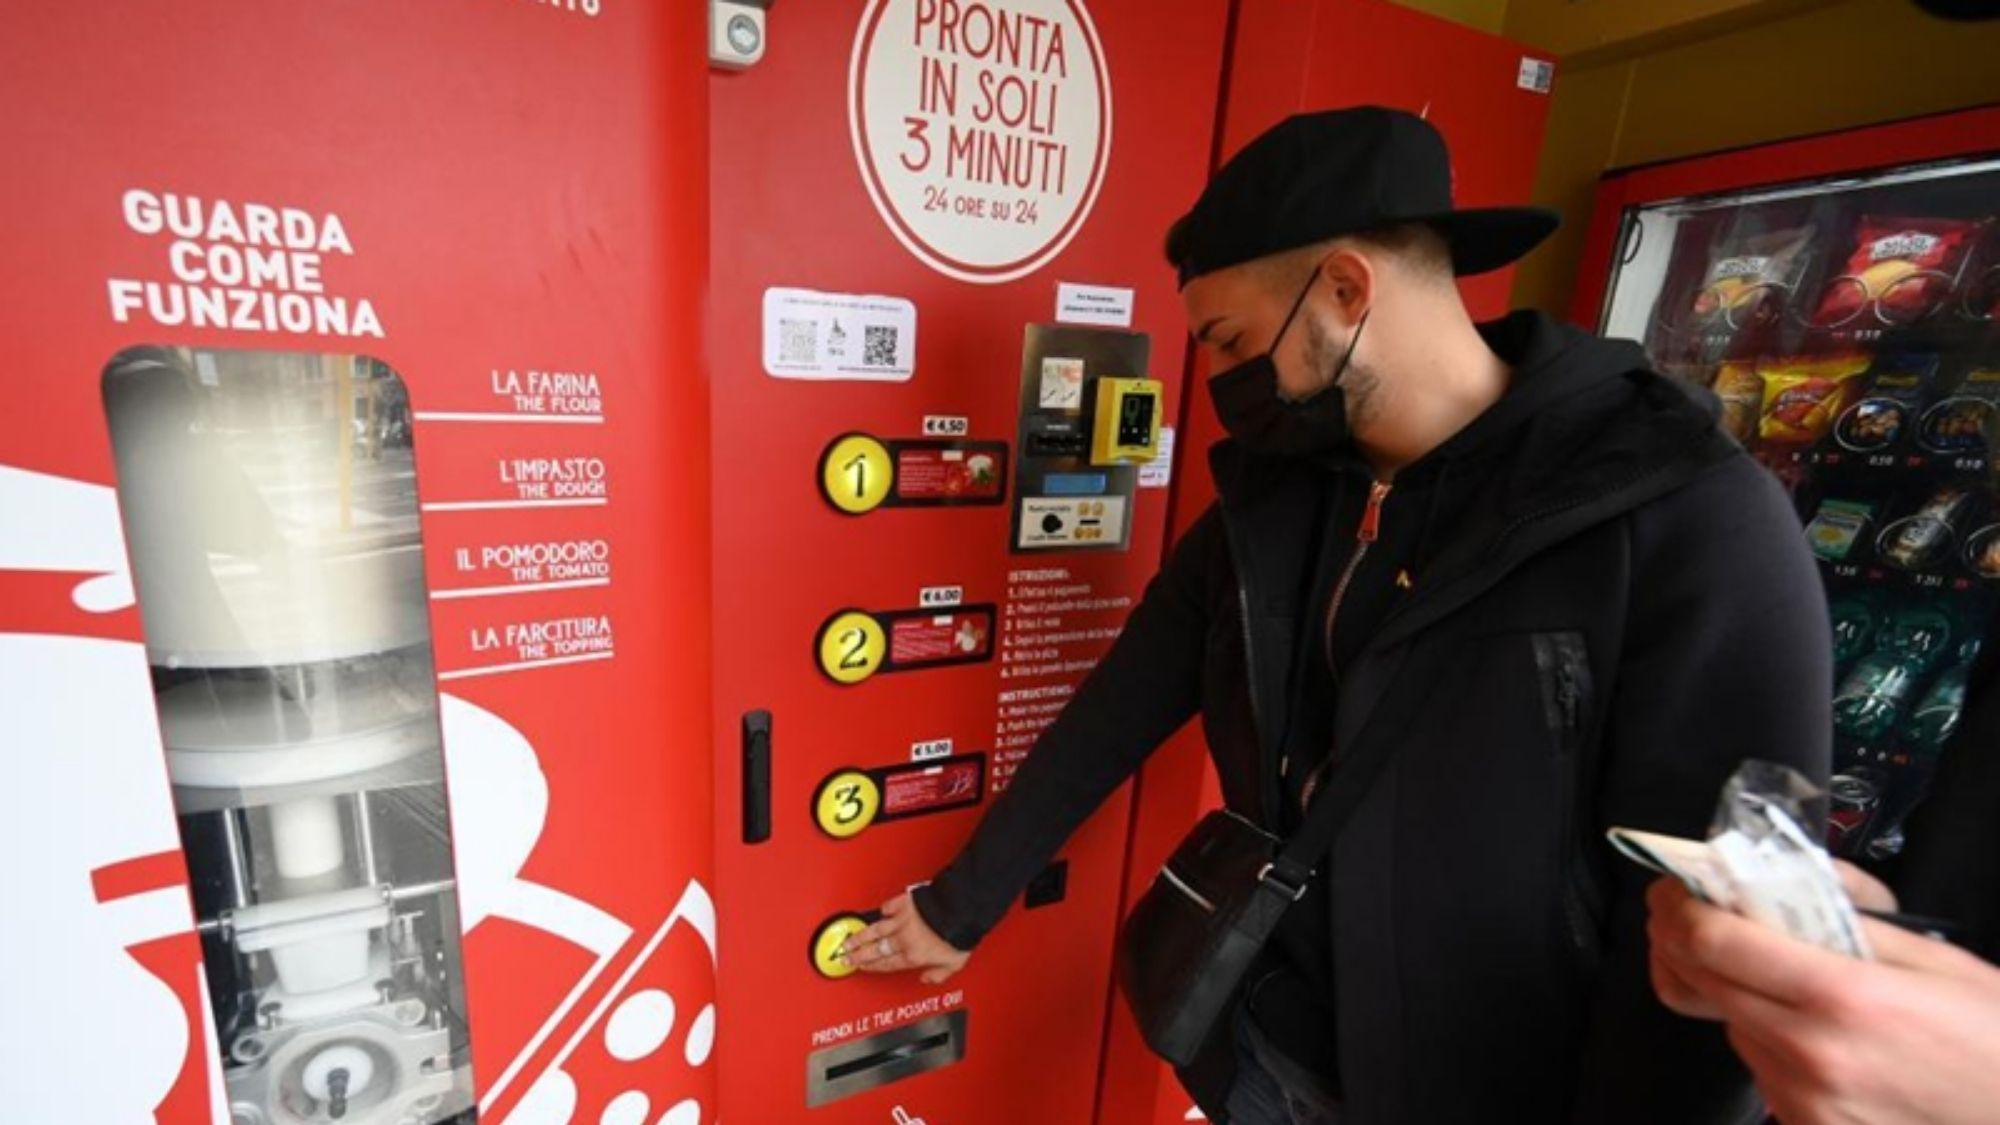 Making the grade? Pizza vending machine in Rome gets mixed reviews